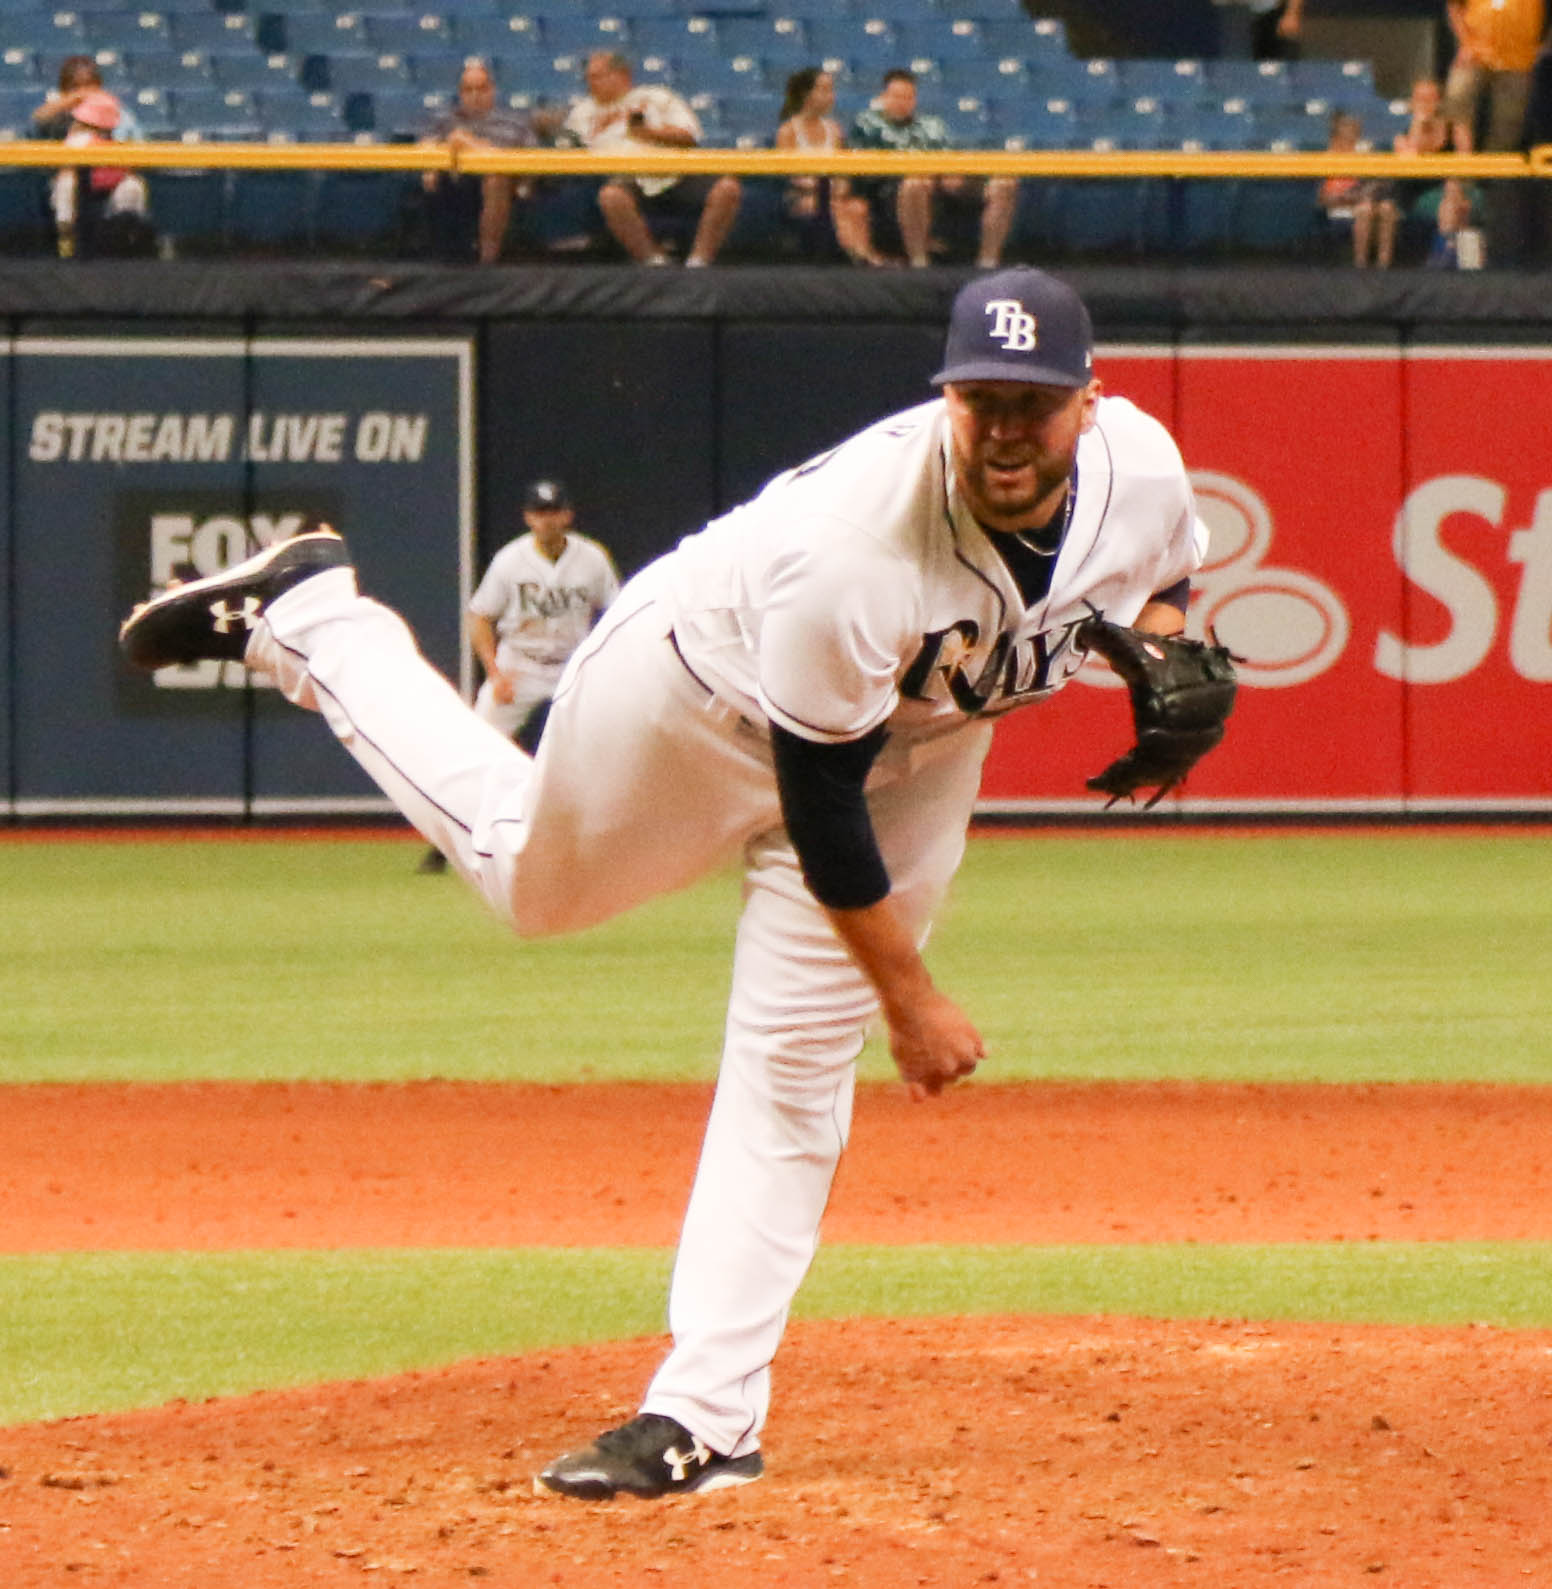 Tommy Hunter pitched a scoreless inning for Rays./STEVE MUNCIE